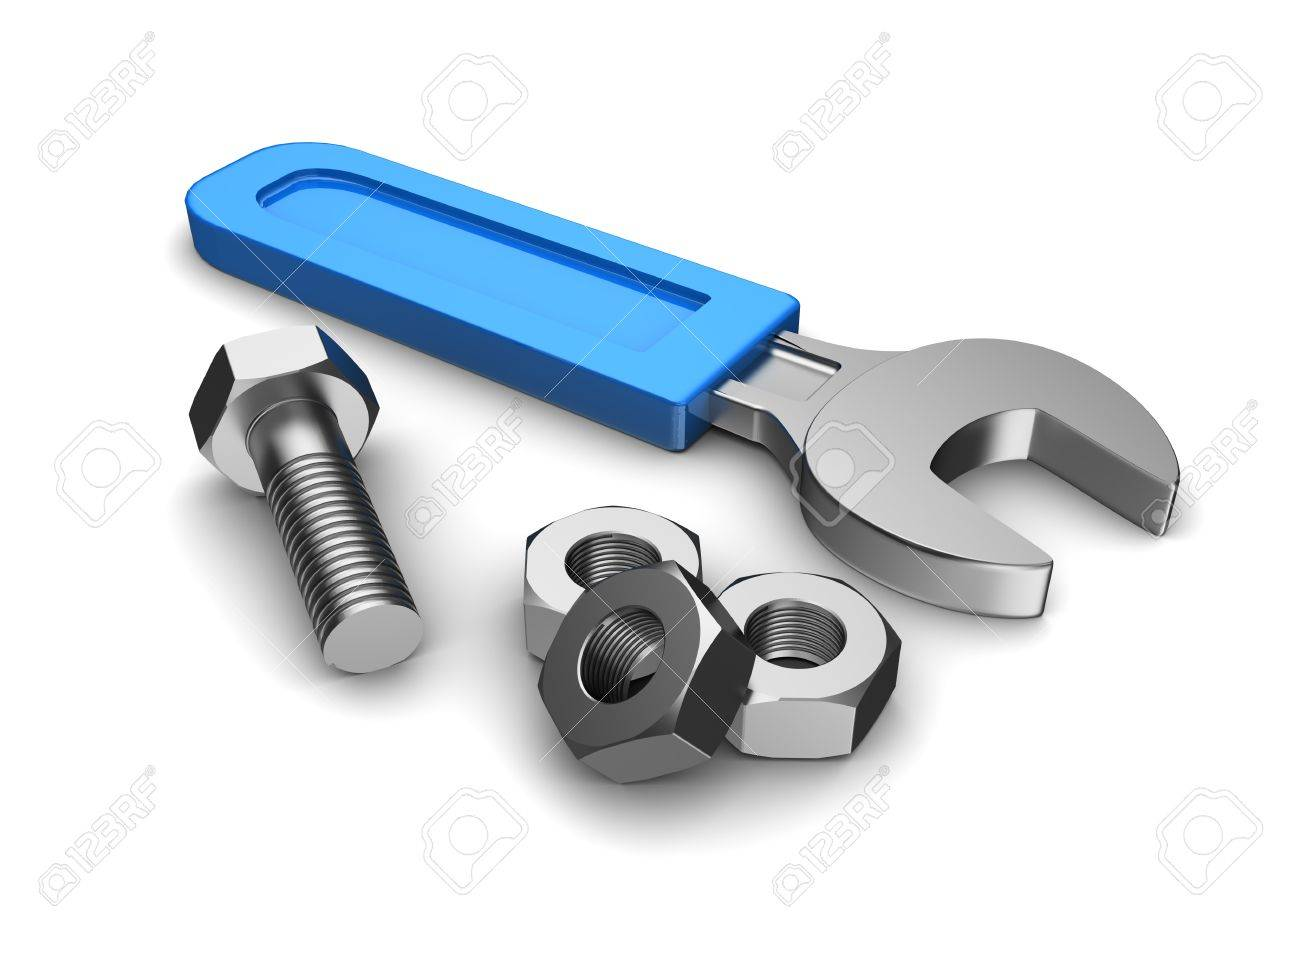 Repair service  wrench with blue handle, three screws and bolt Stock Photo - 15209544